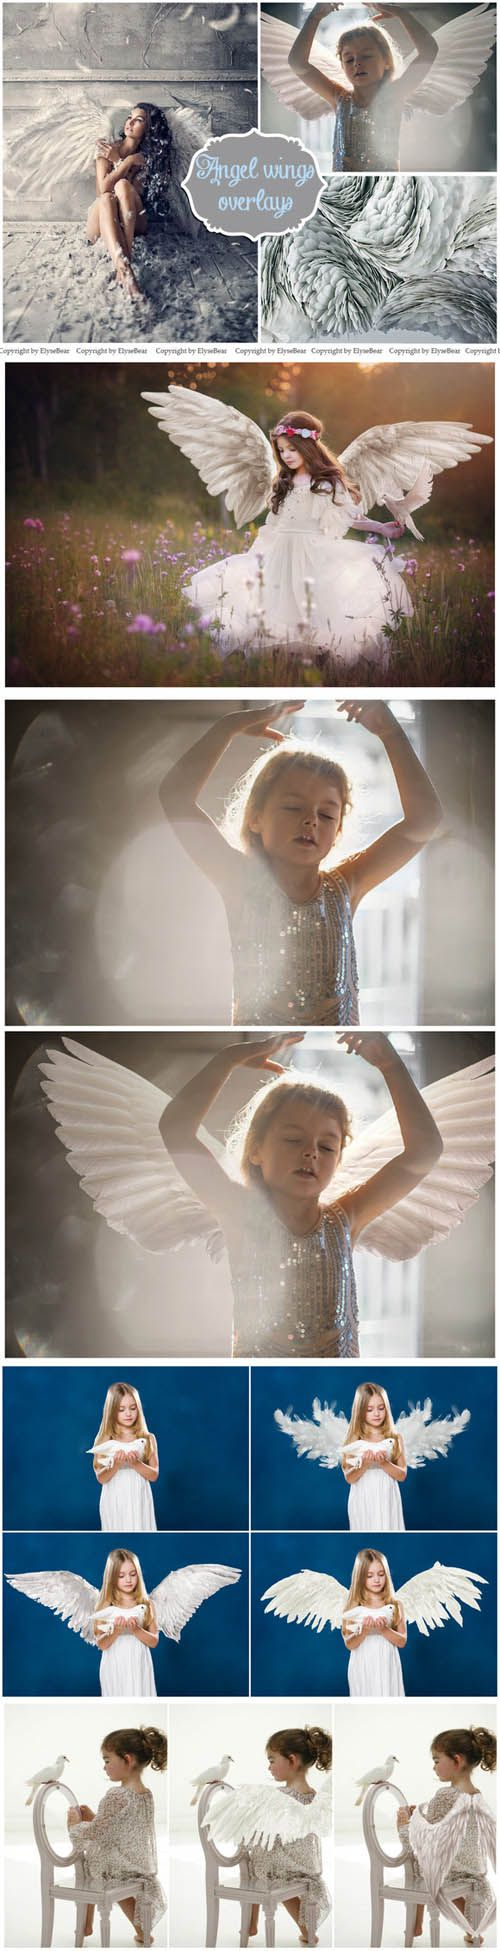 15 White Angel Wings Overlays PNG » Vector, PSD Flyers, Templates, After Effects, Fonts, Web Design